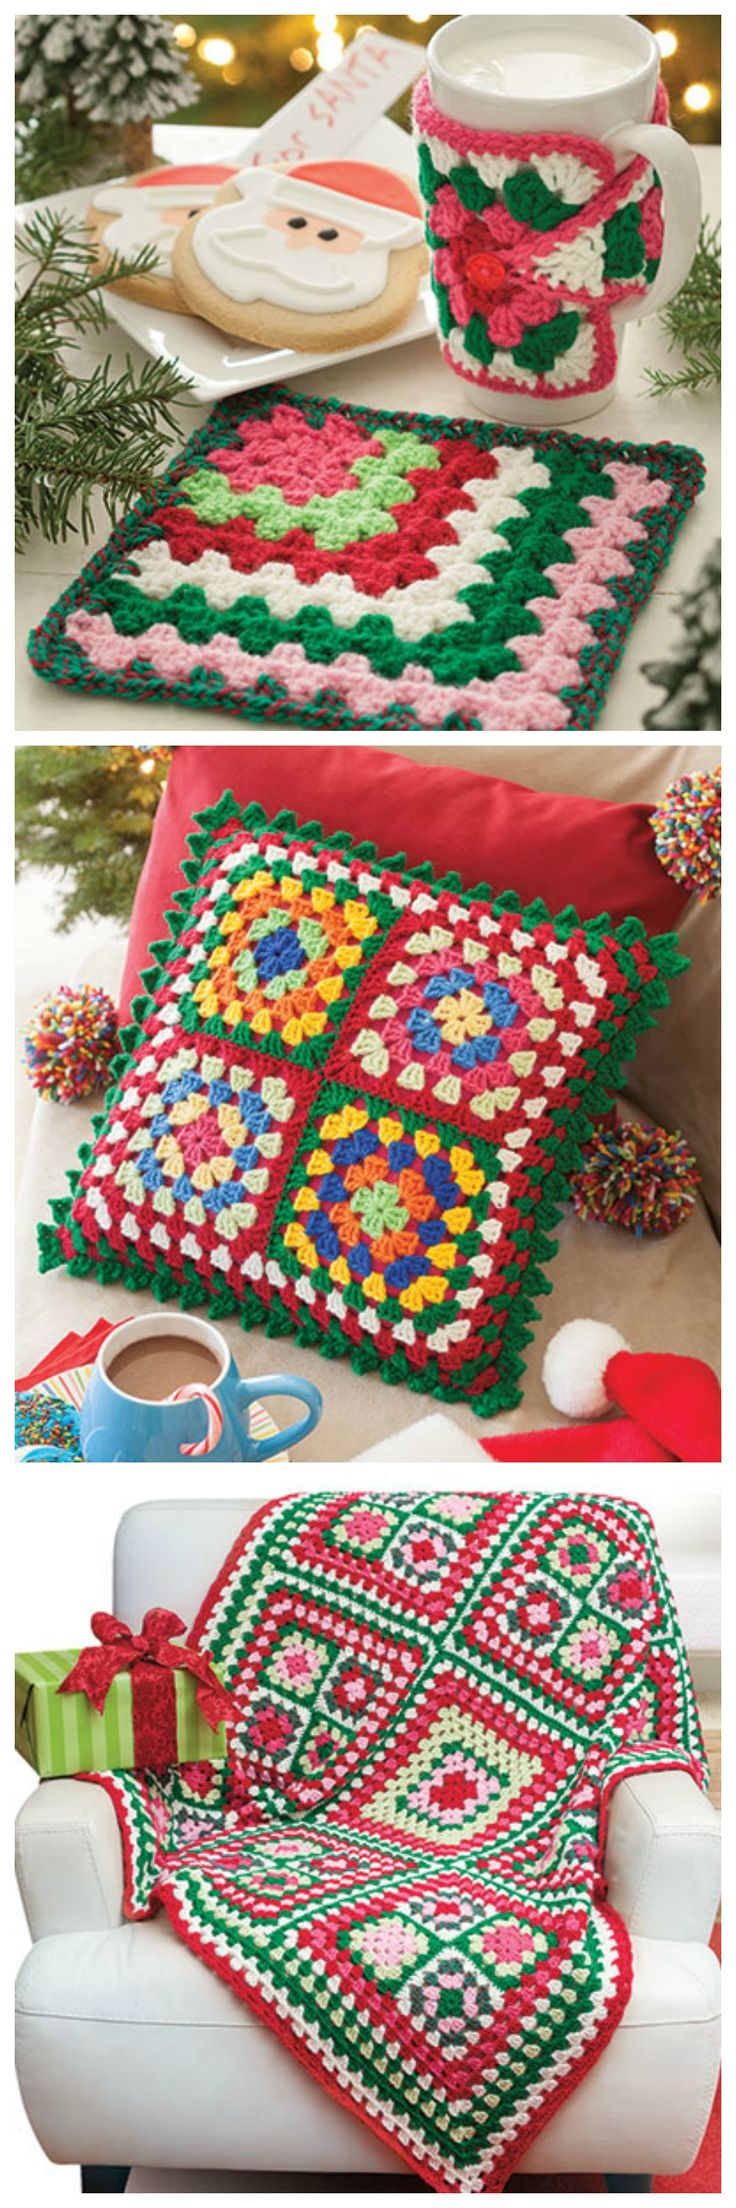 Annie's top-selling A Granny Square Christmas Crochet book includes 15 festive designs.